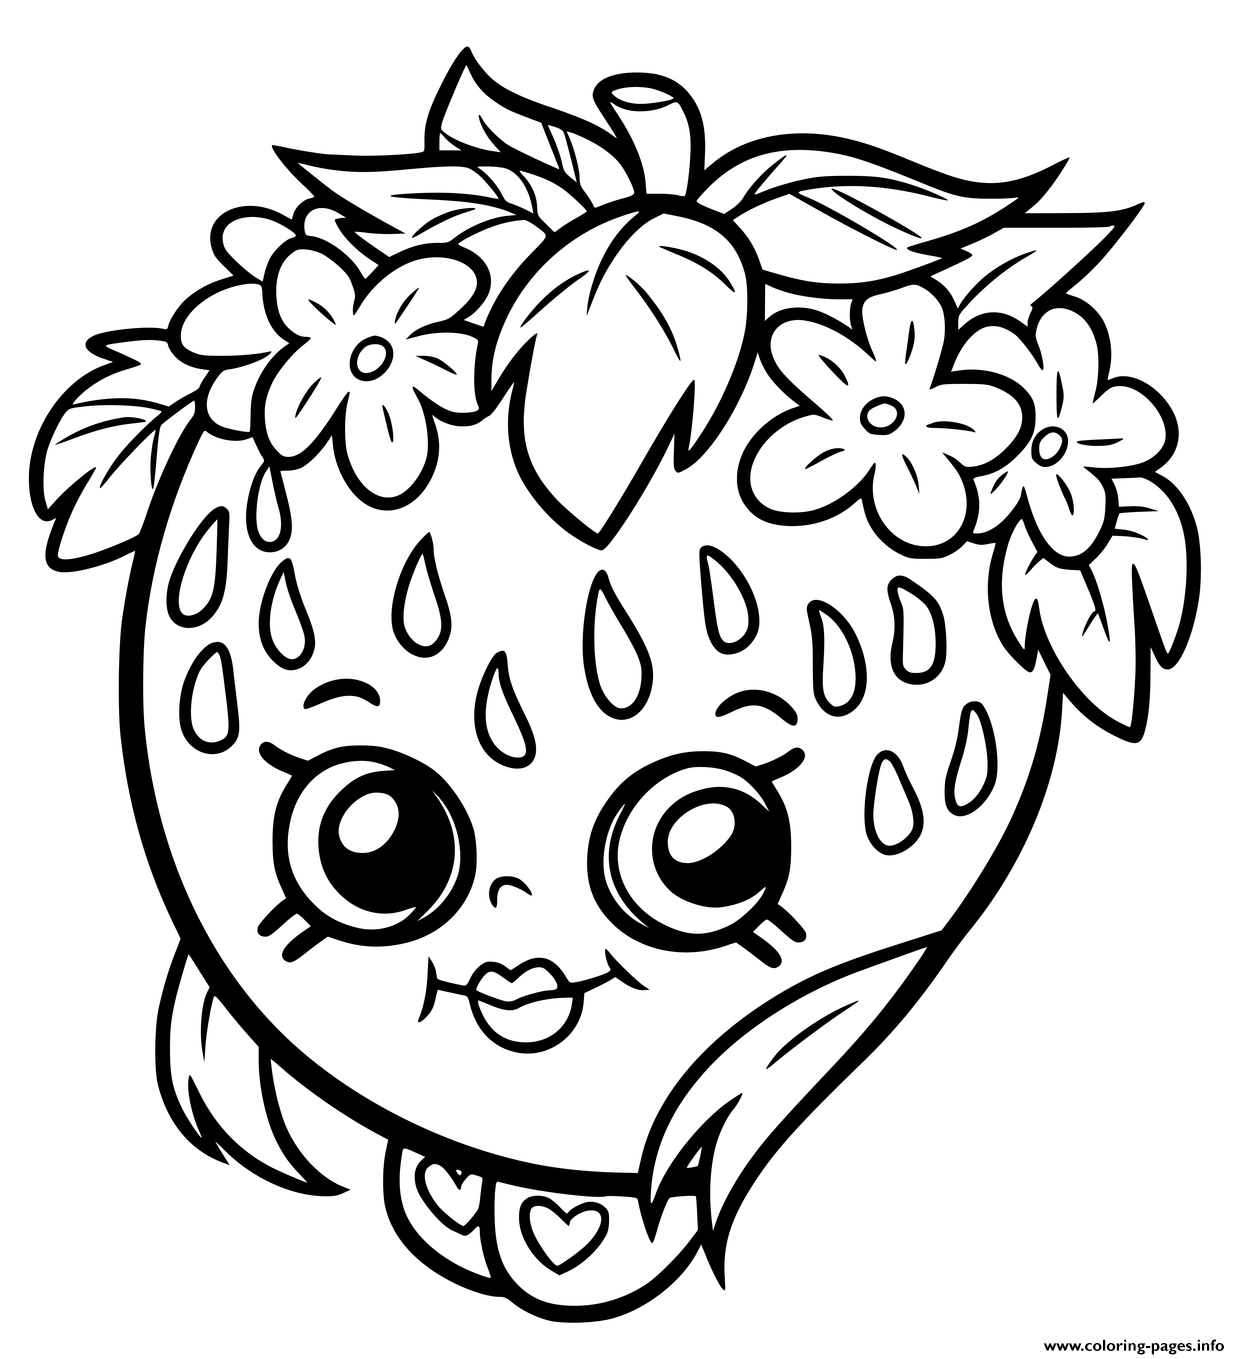 Find More Coloring Pages Online For Kids And Adults Of Shopkins Strawberry Smile To Print